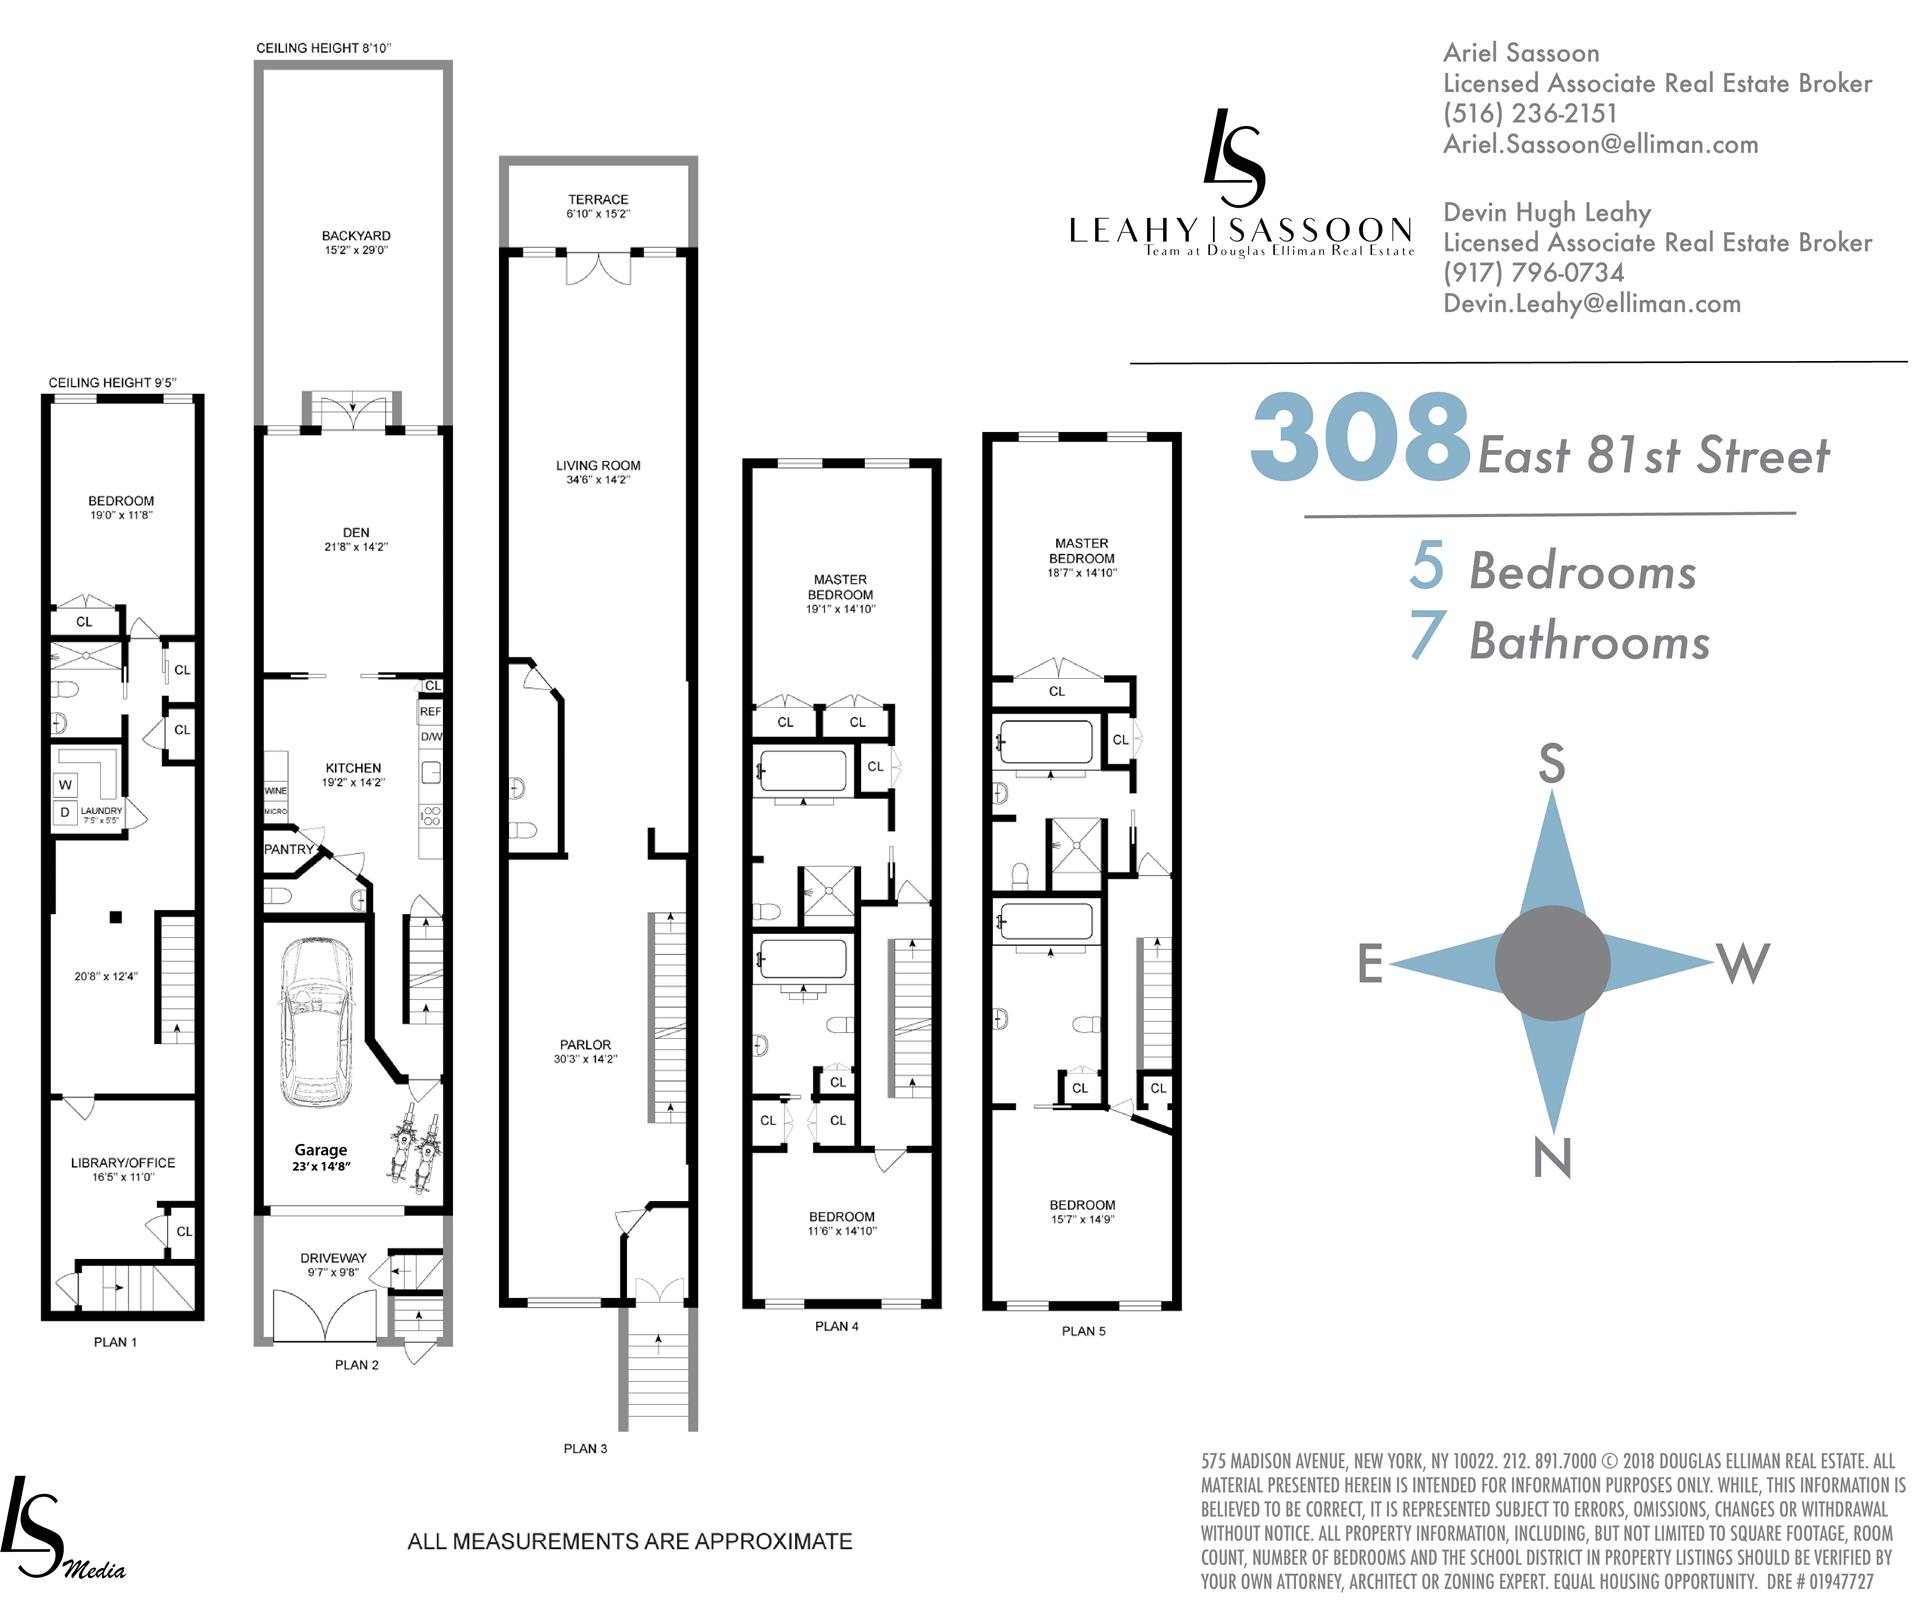 Floor plan of 308 East 81st St - Upper East Side, New York